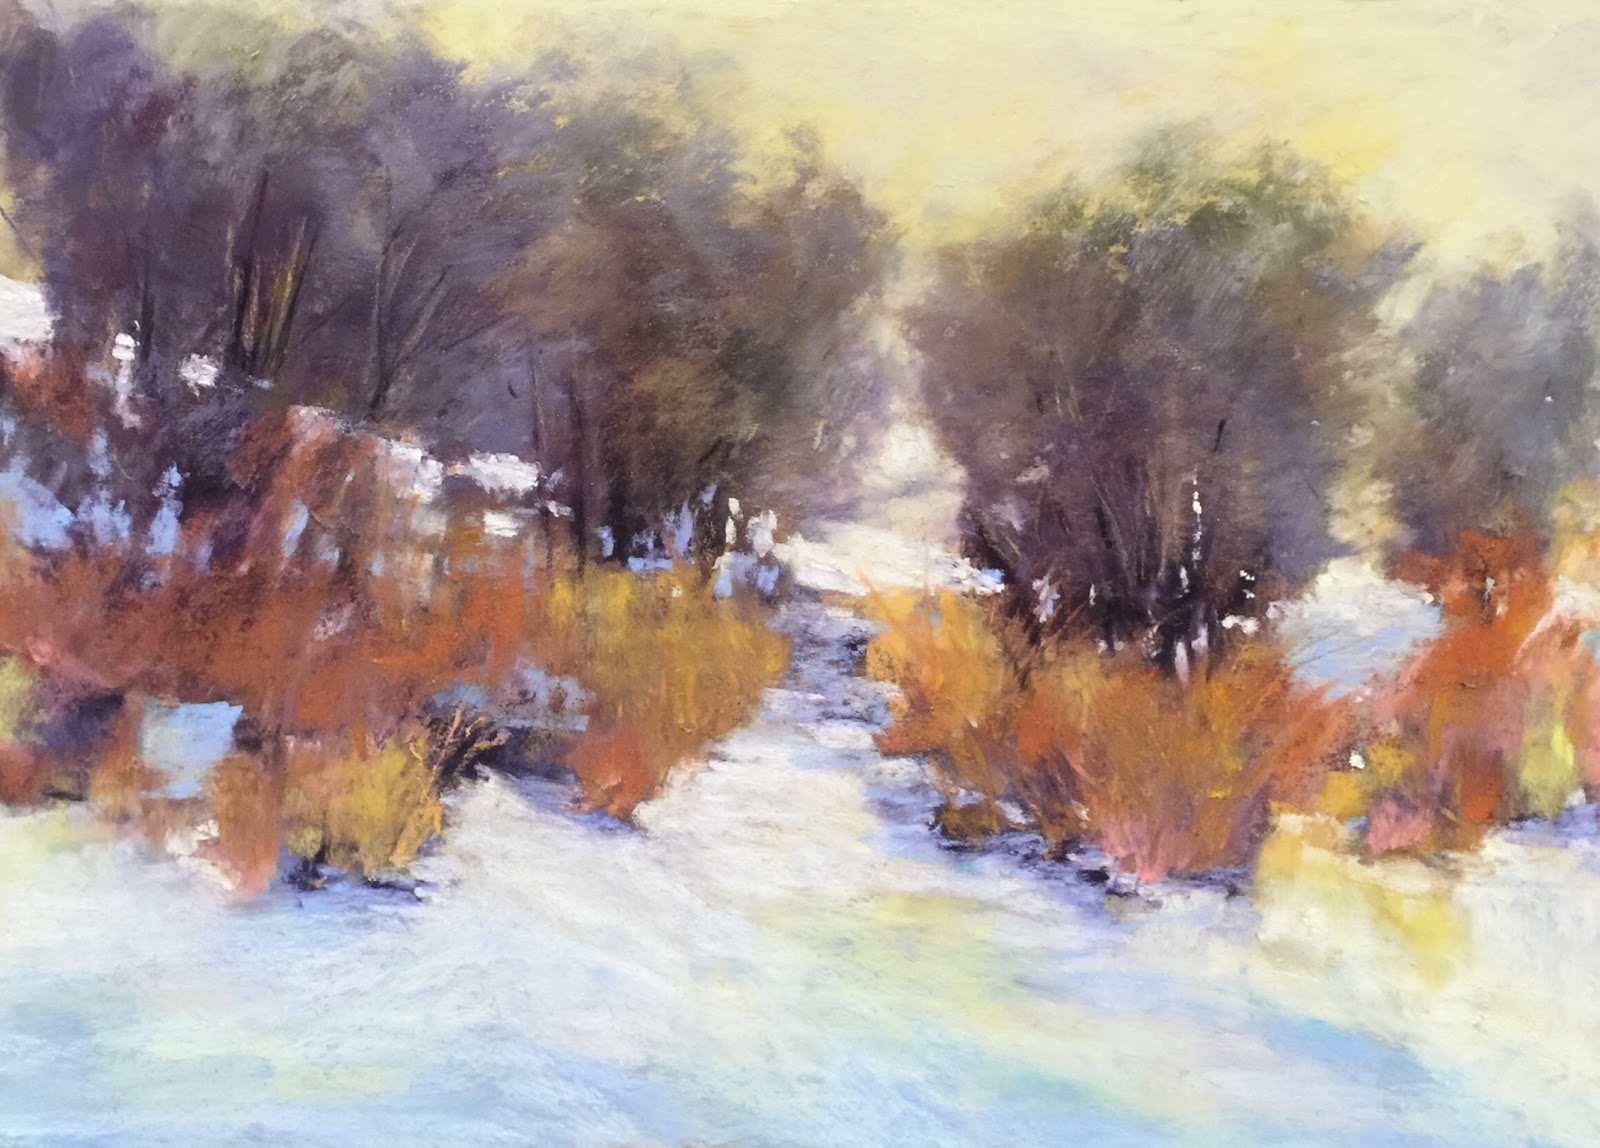 Donna Theresa - Winter landscape study